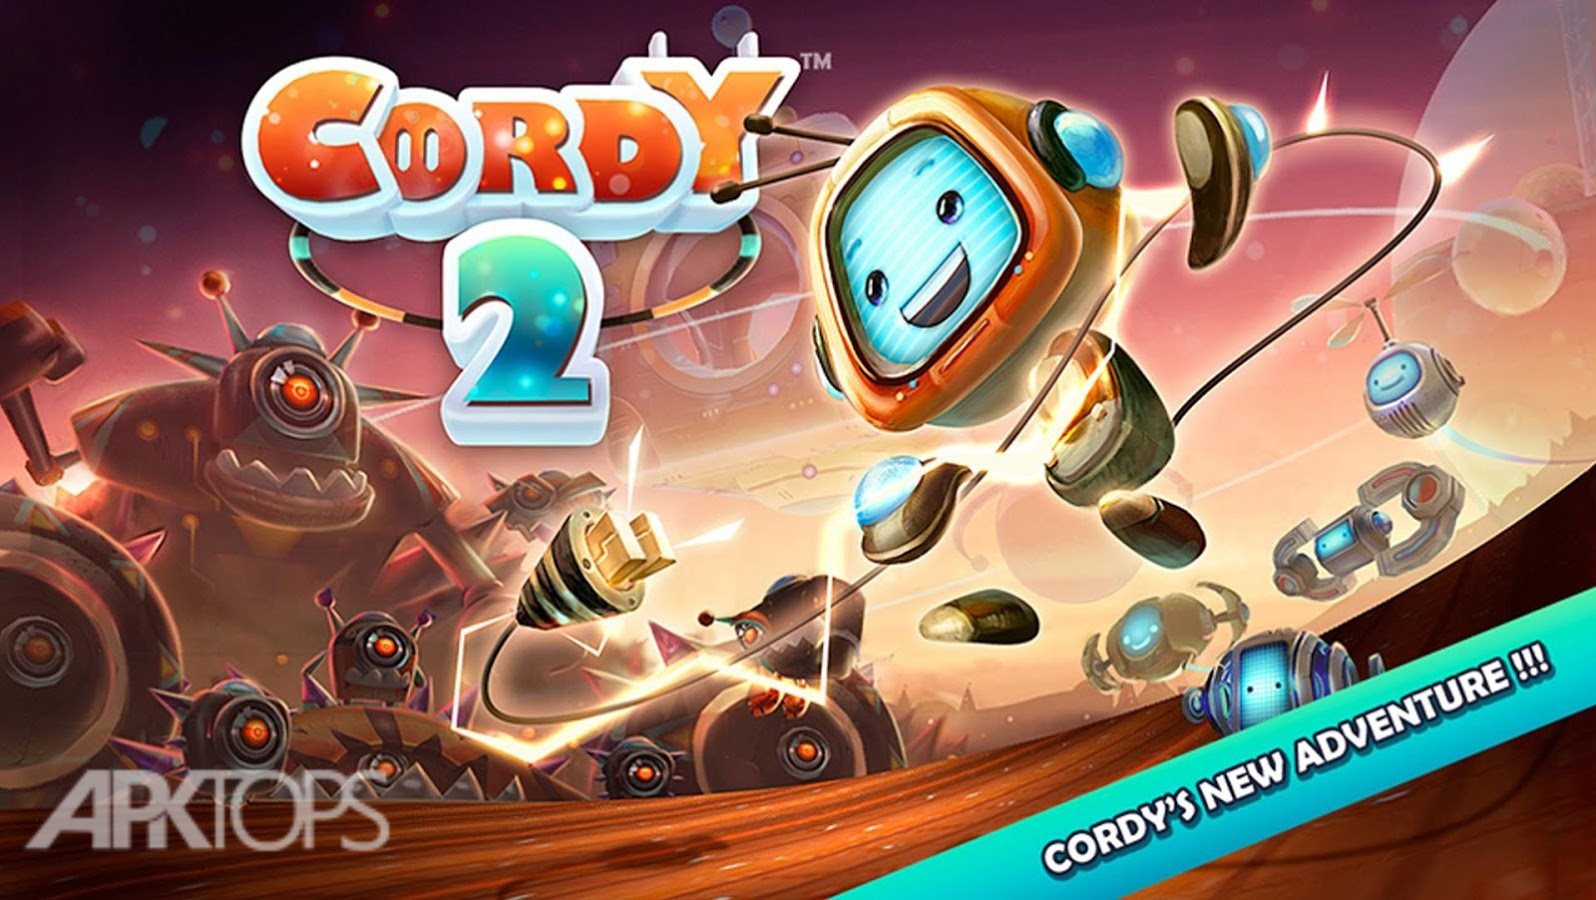 Cordy_2_cover[APKTOPS.ir]